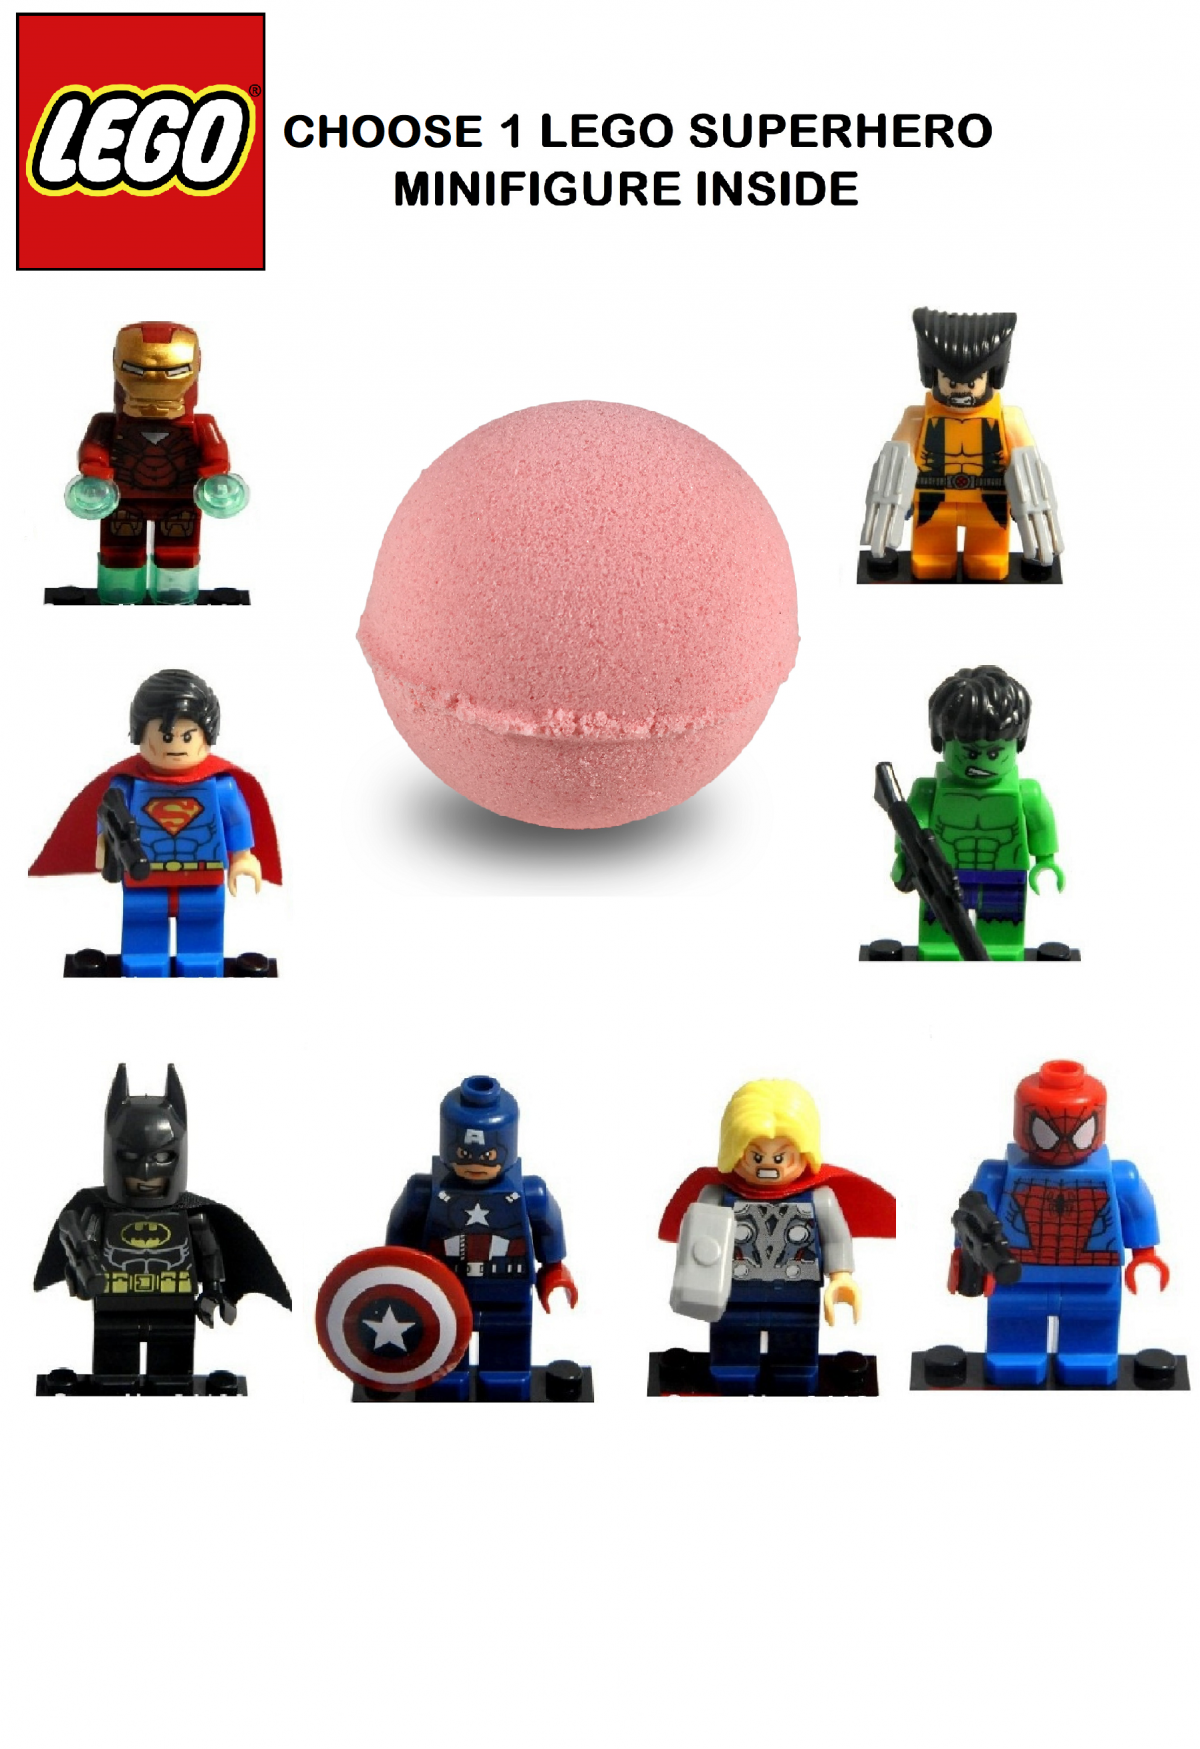 Bath Bomb For Kids With Surprise LEGO SUPERHERO TOY INSIDE – RELAXCATION